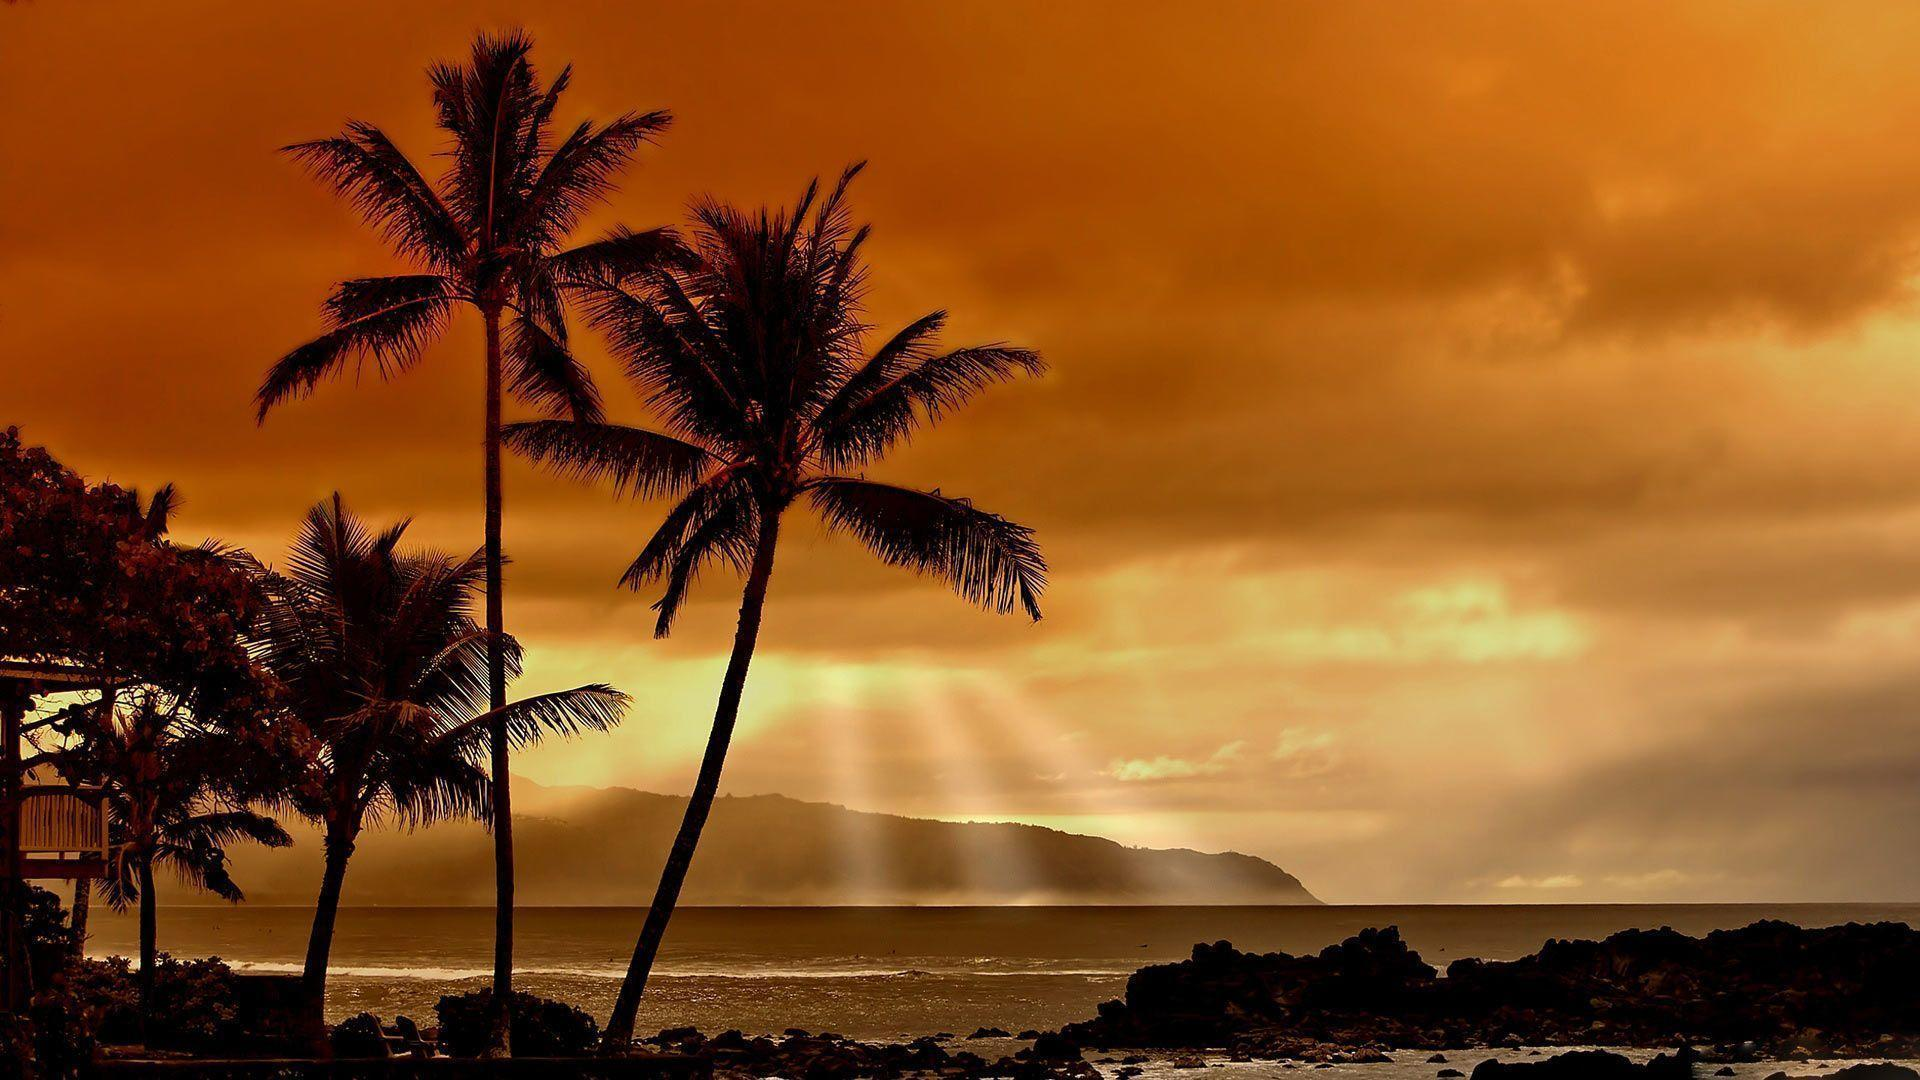 Hawaii Free HD Backgrounds, Download HD Wallpapers